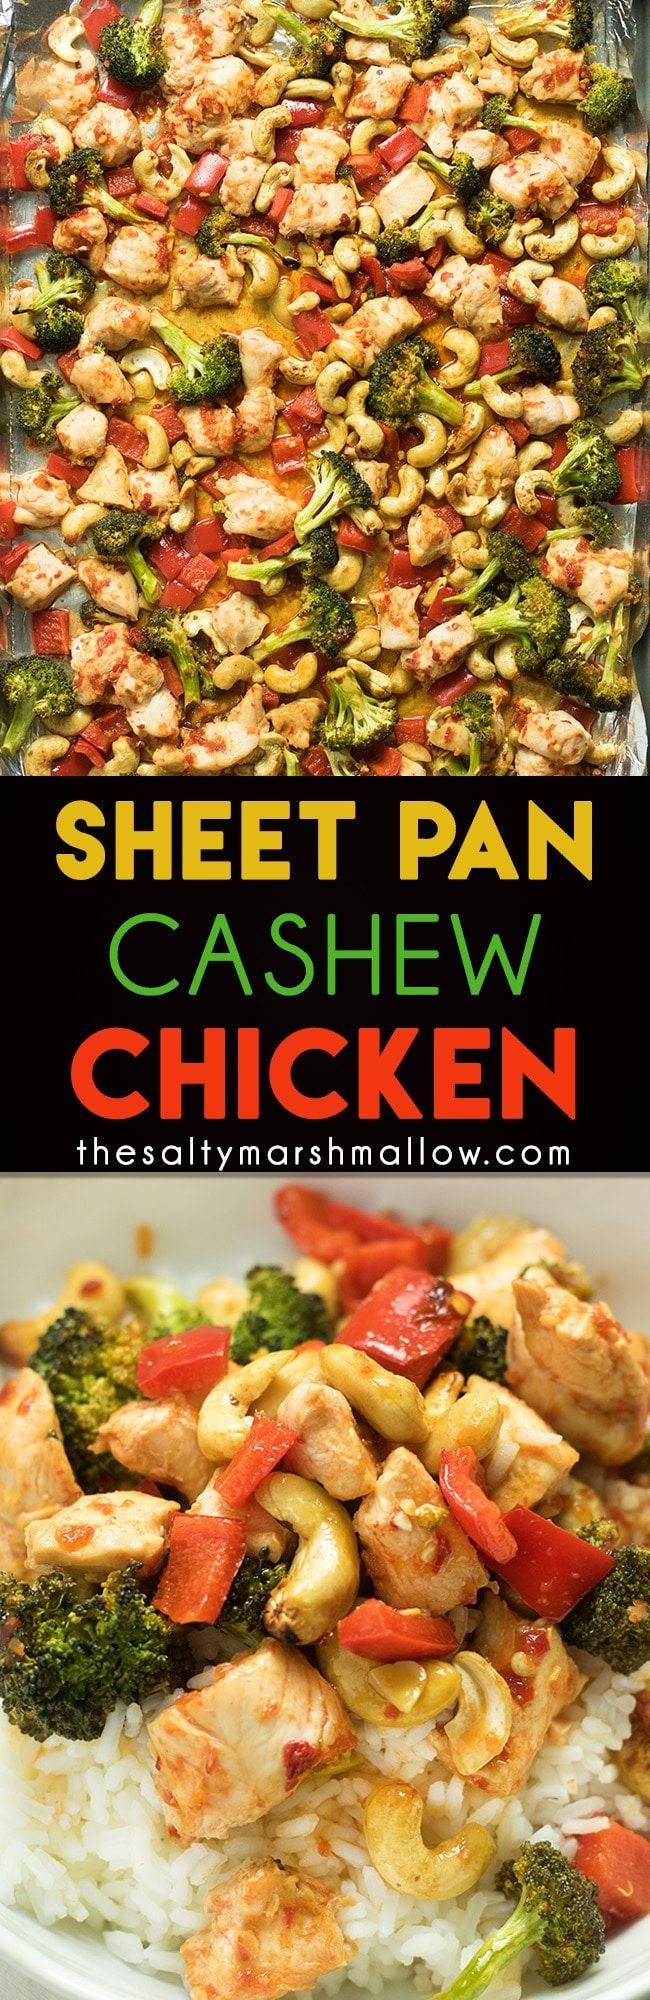 Sheet pan cashew chicken! An easy one pan, 30 minute dinner, for a takeout favorite made quick and healthy at home! This is great served over rice or eat it as is for a tasty low carb dinner.